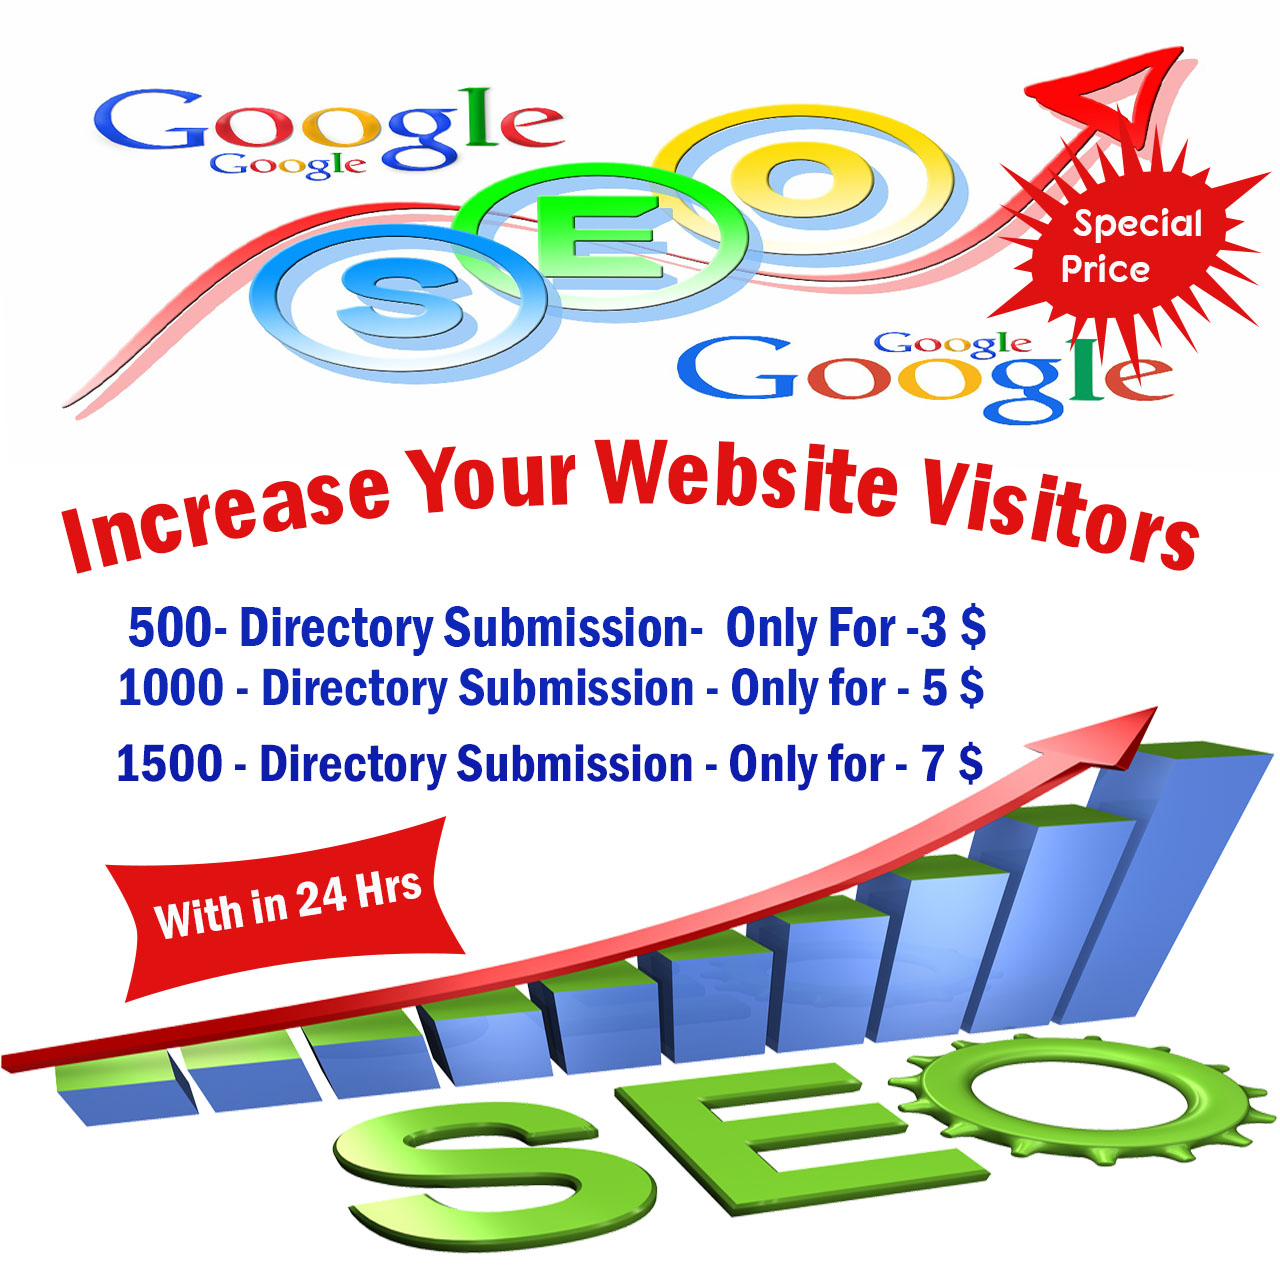 I will submit website to 500 directories within 24 hours